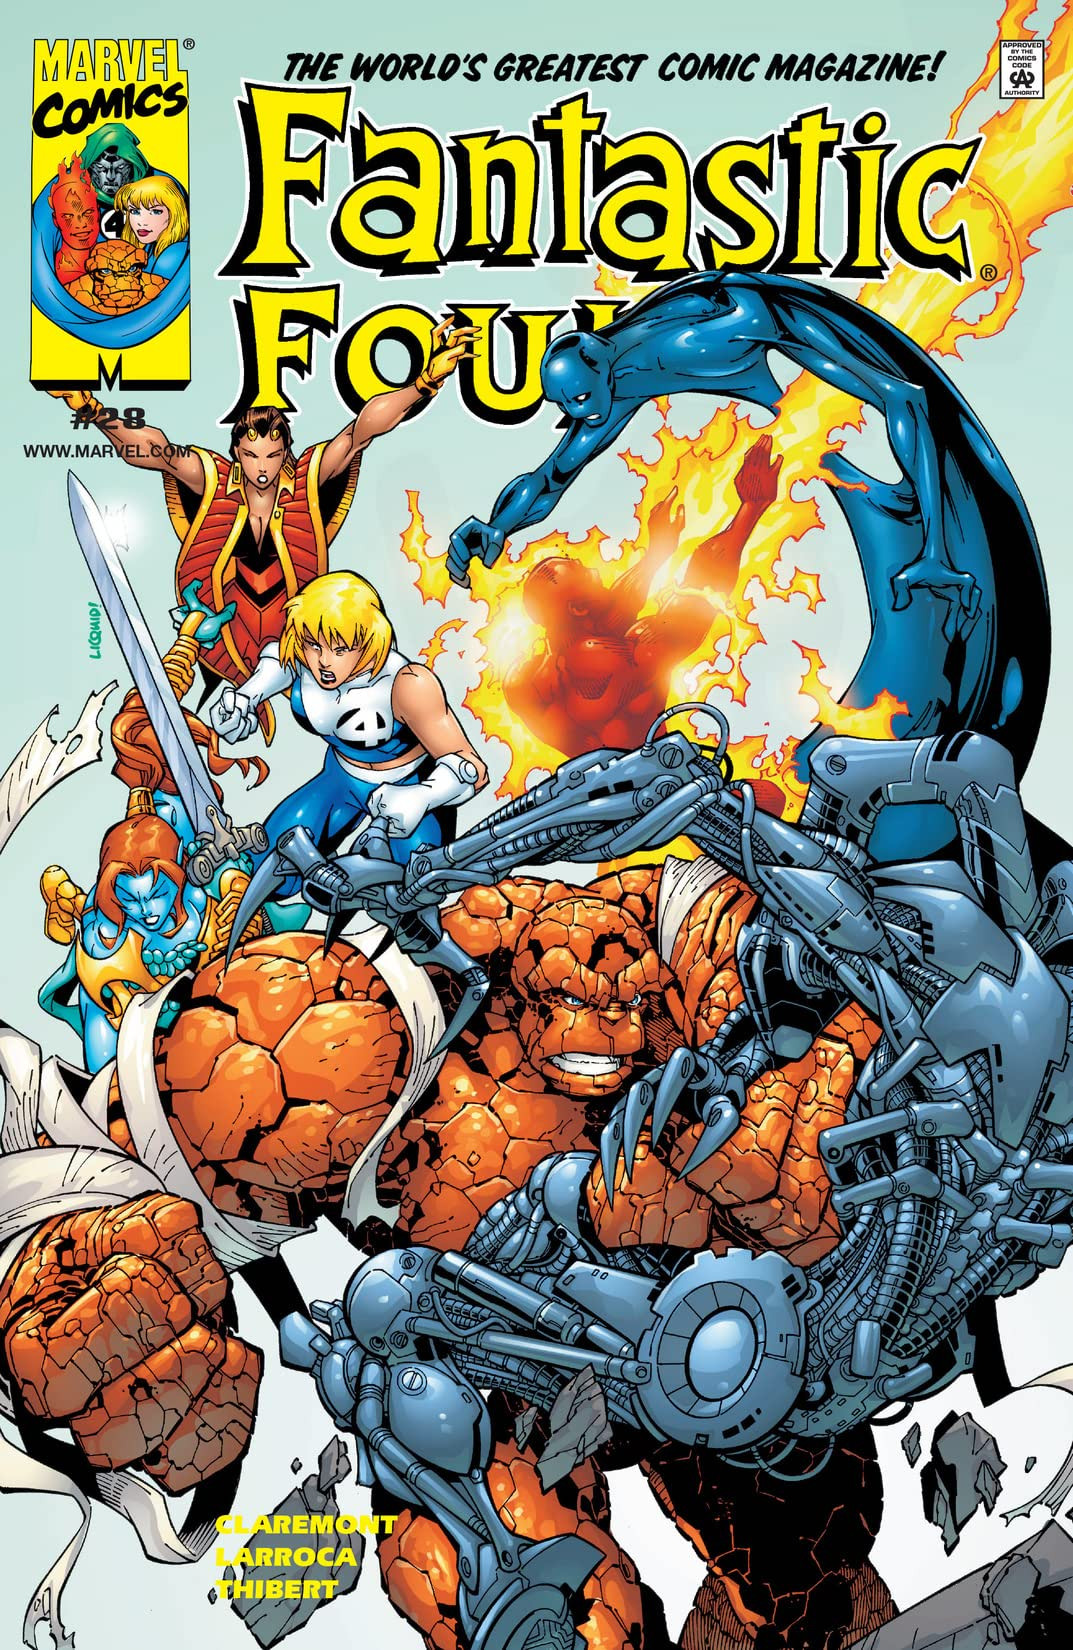 Fantastic Four Vol 3 28.jpg